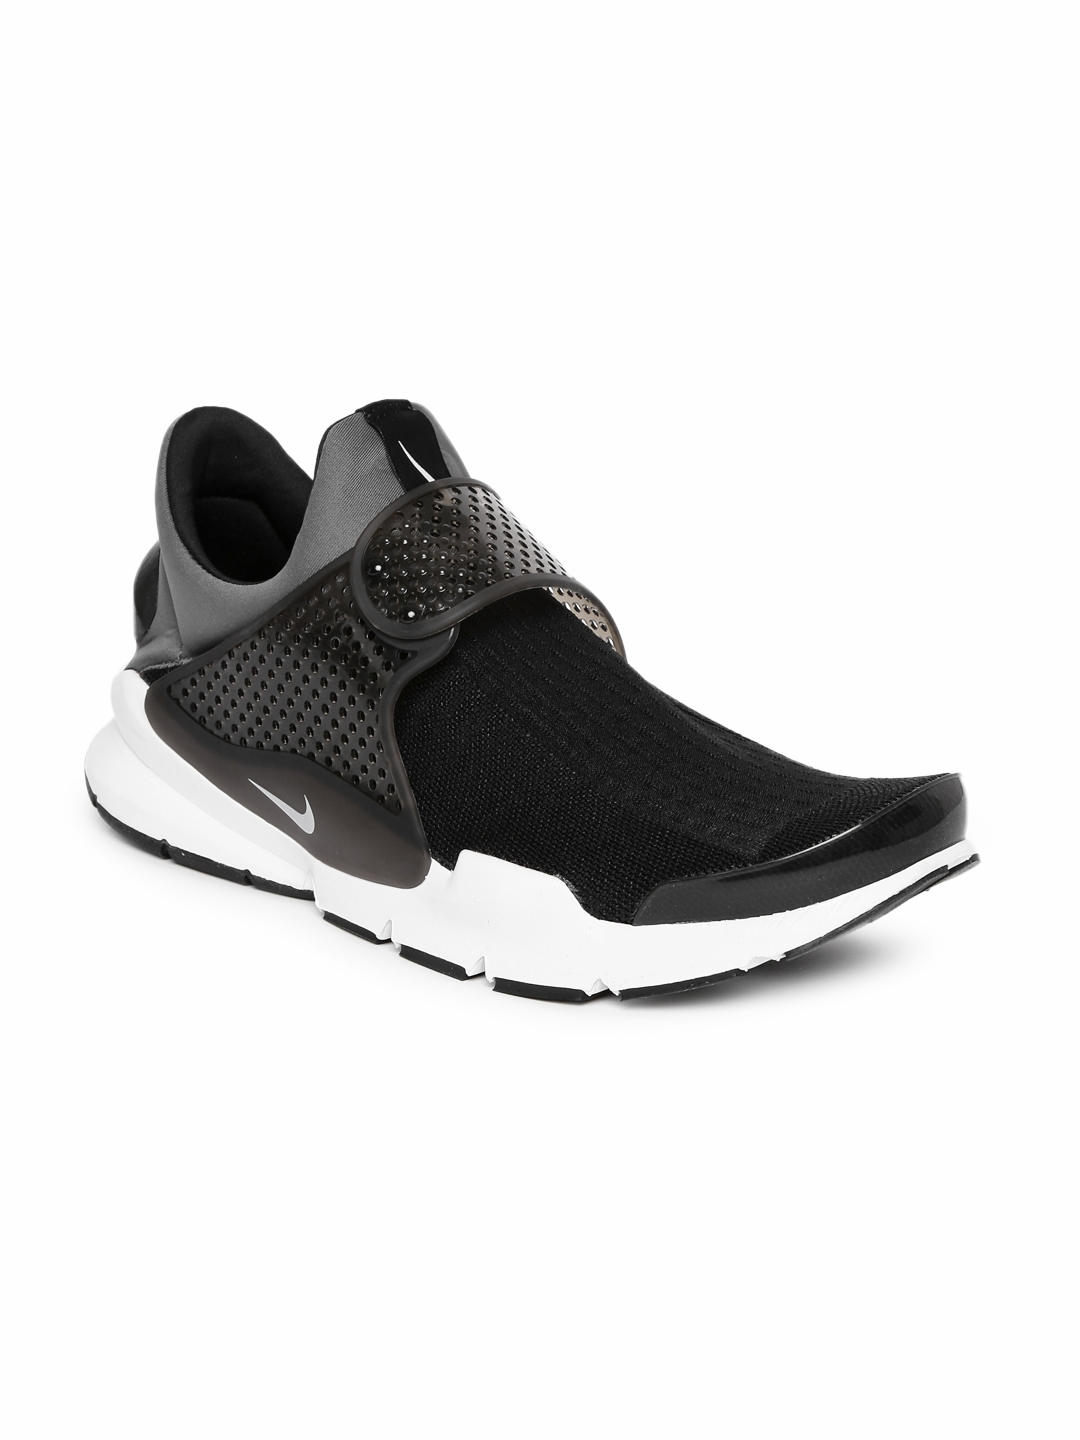 c74b21fa1d71 Buy Nike Men Black SOCK DART KJCRD Slip On Sneakers - Casual Shoes ...